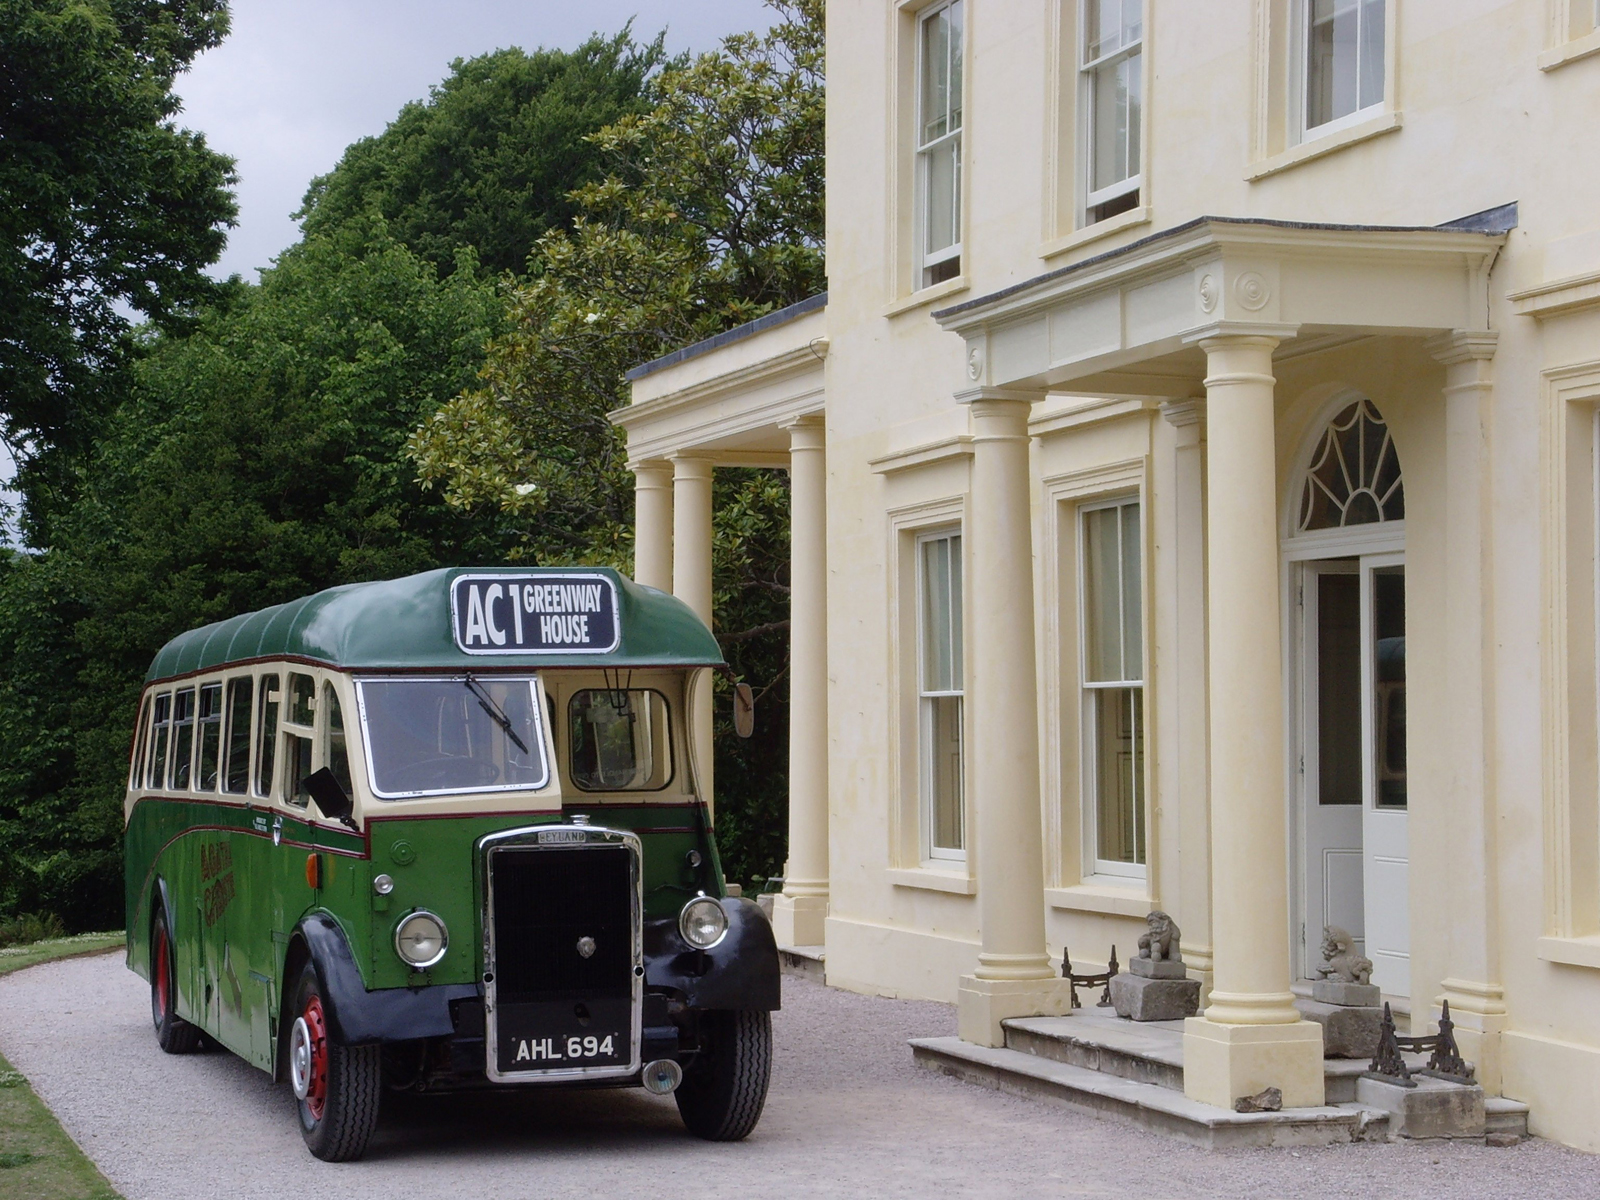 Greenway House - dog friendly visitor attraction near Torquay